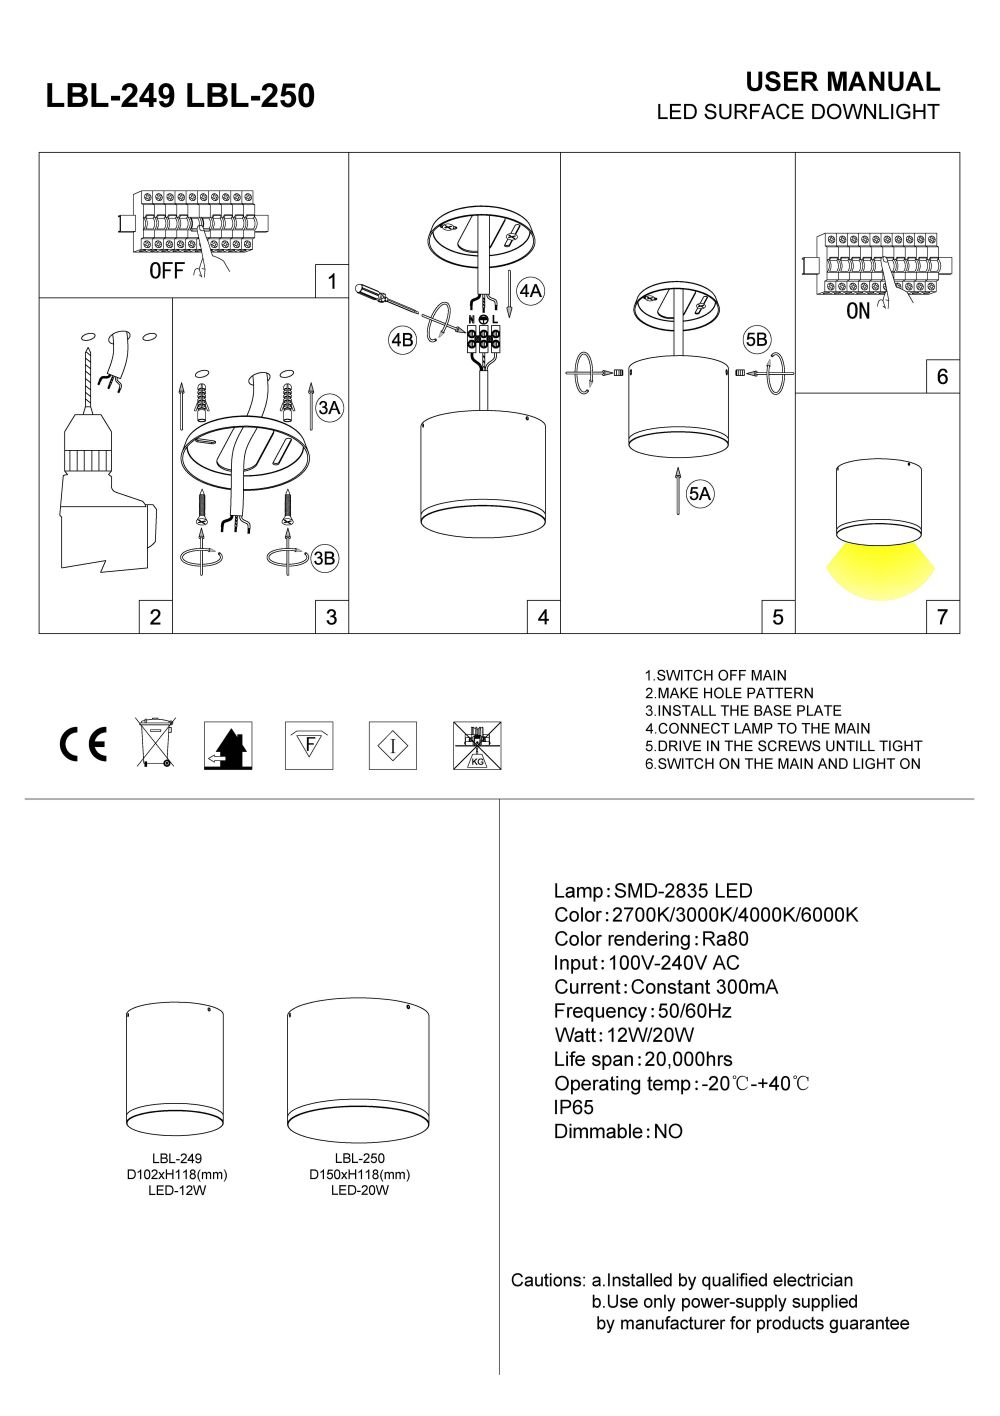 LBL-249 LBL-250 soffit light installation guide